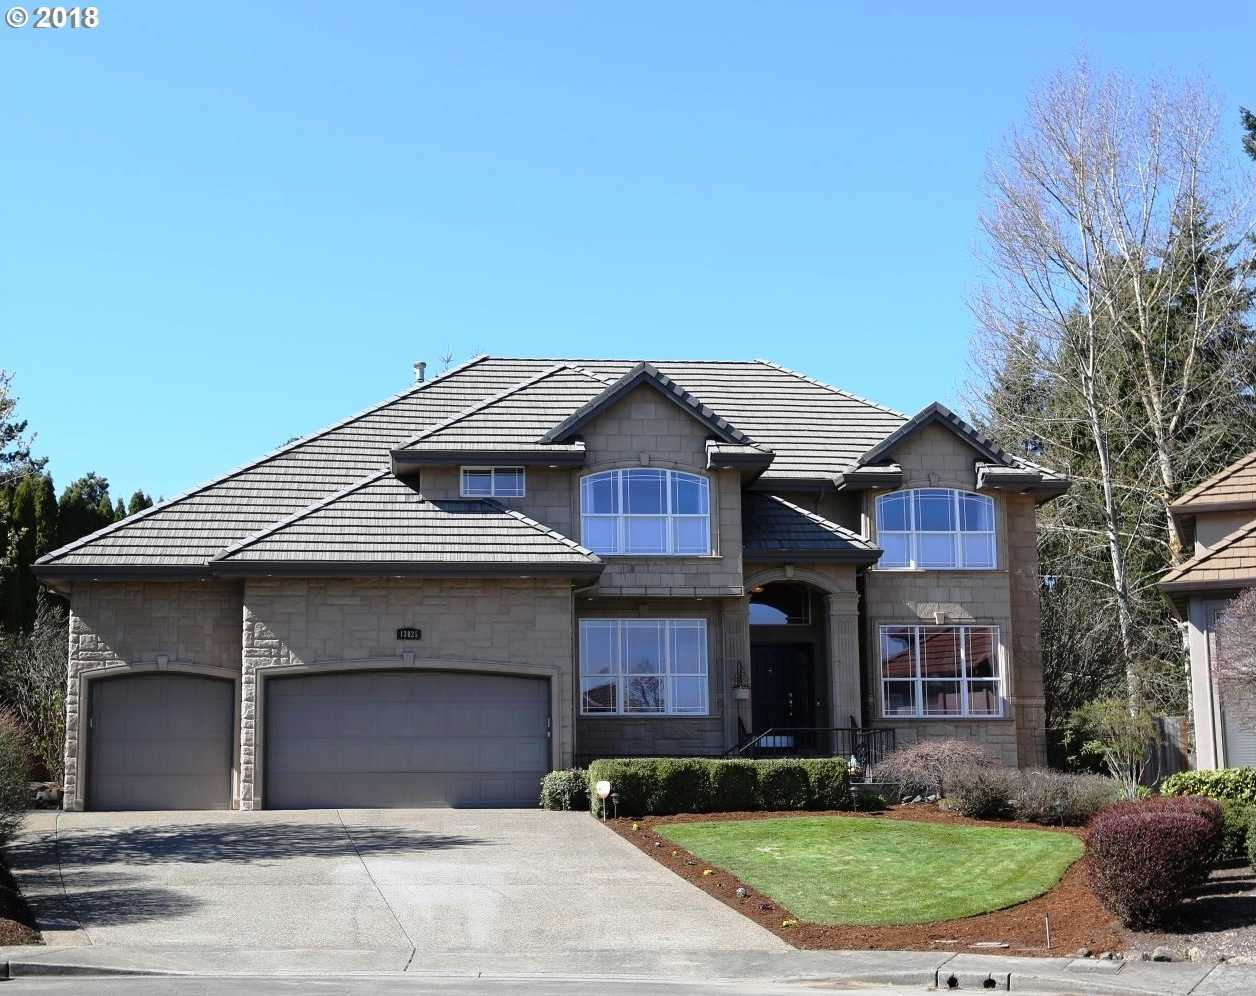 $745,000 - 5Br/4Ba -  for Sale in Amesbury Heights, Tigard